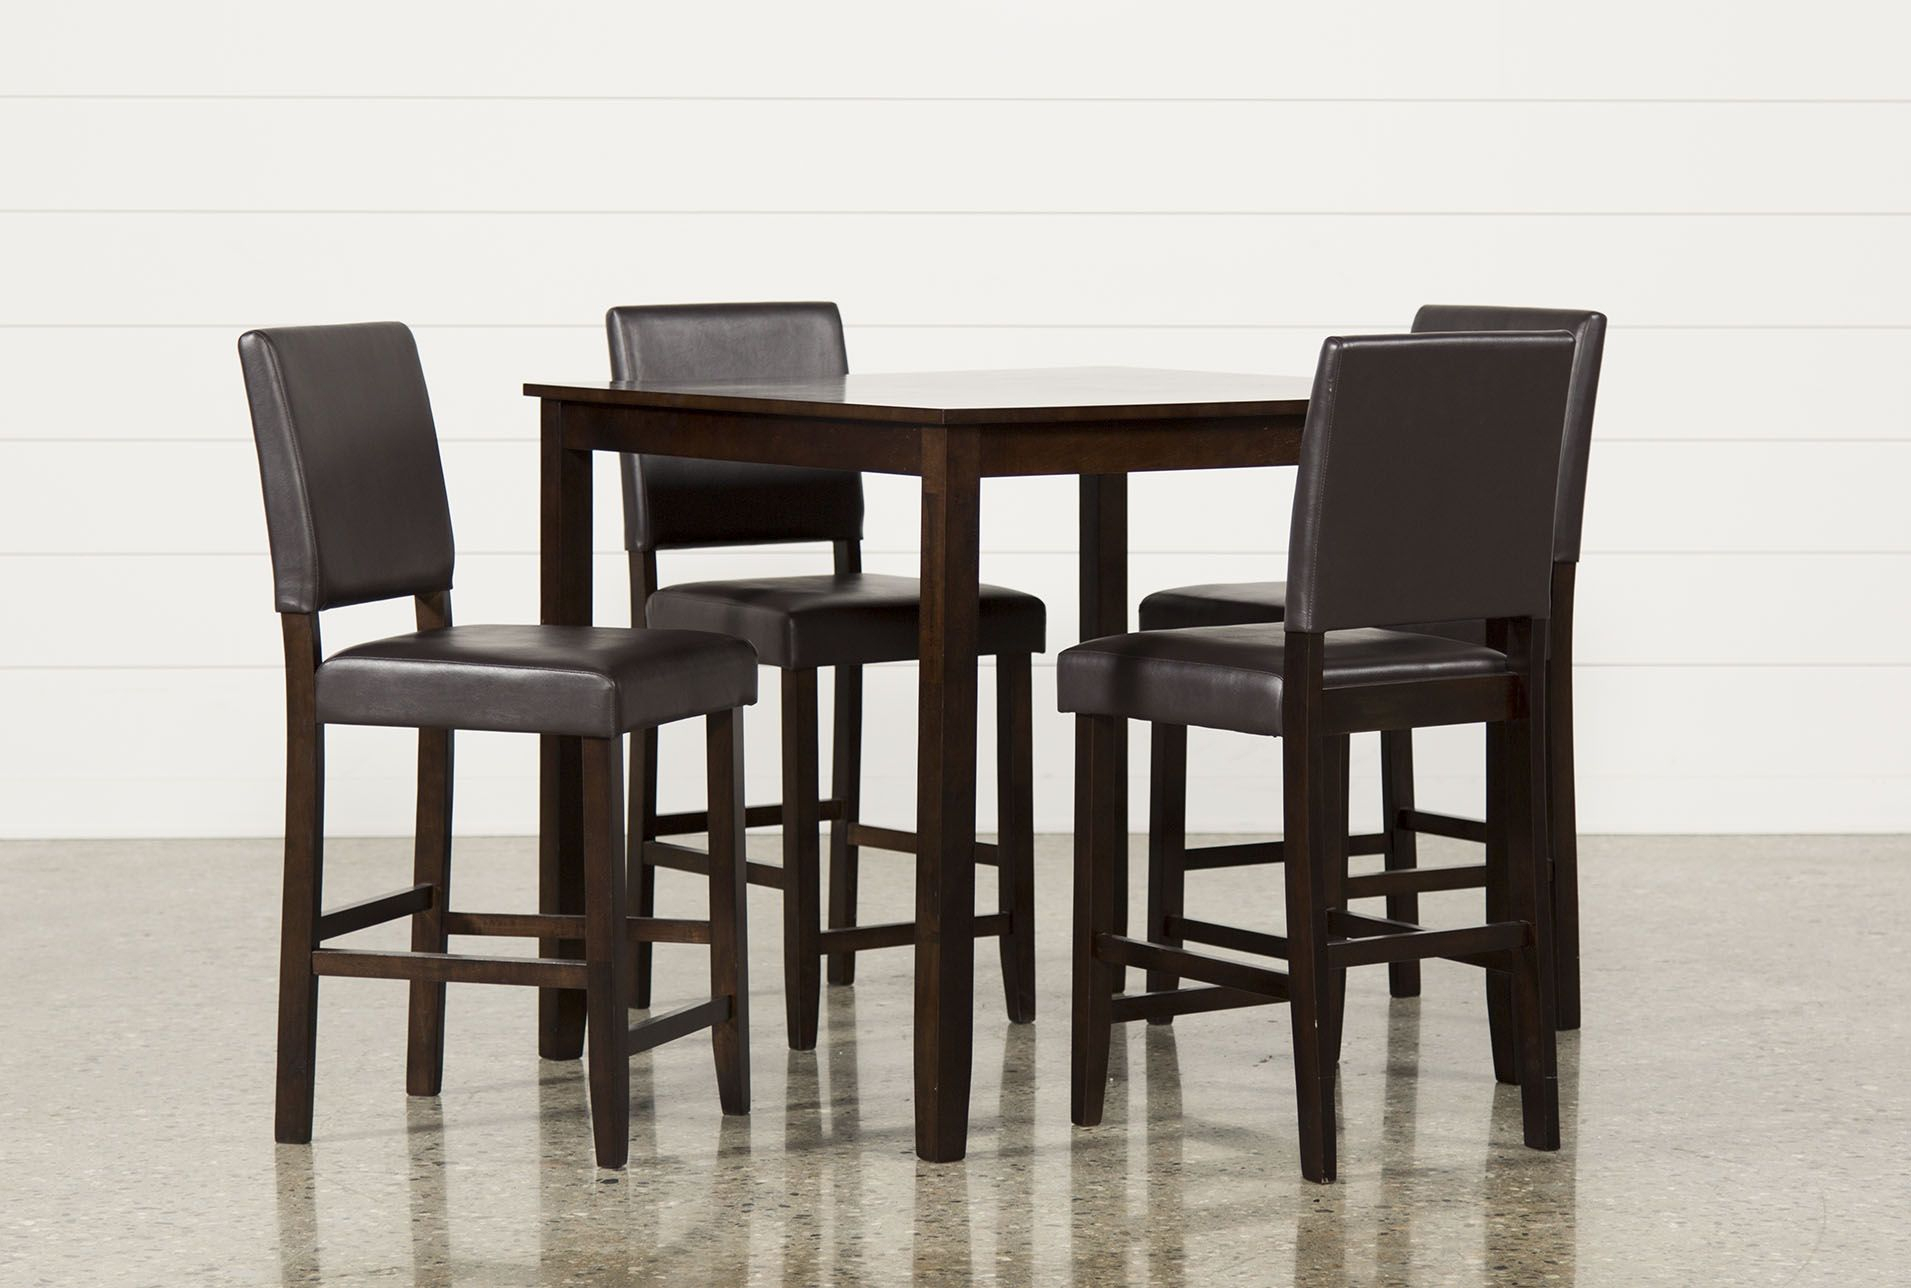 Jarrod 5 Piece Counter Set, Cappucino, Kitchen & Dining Furniture Pertaining To 2018 Jarrod 5 Piece Dining Sets (Photo 2 of 20)